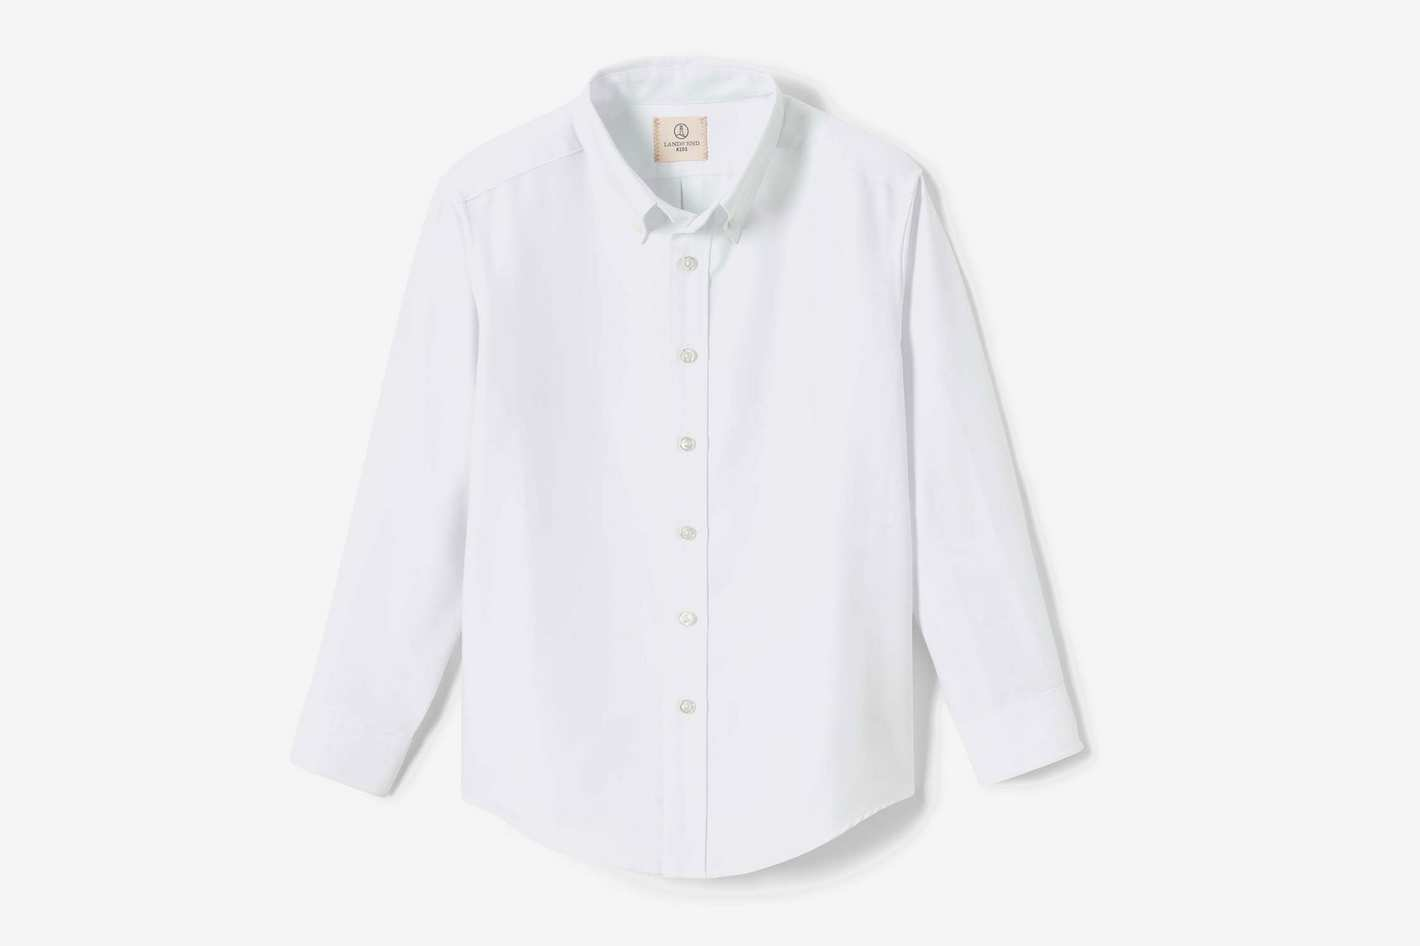 Lands' End School Uniform Boys Long Sleeve Oxford Dress Shirt